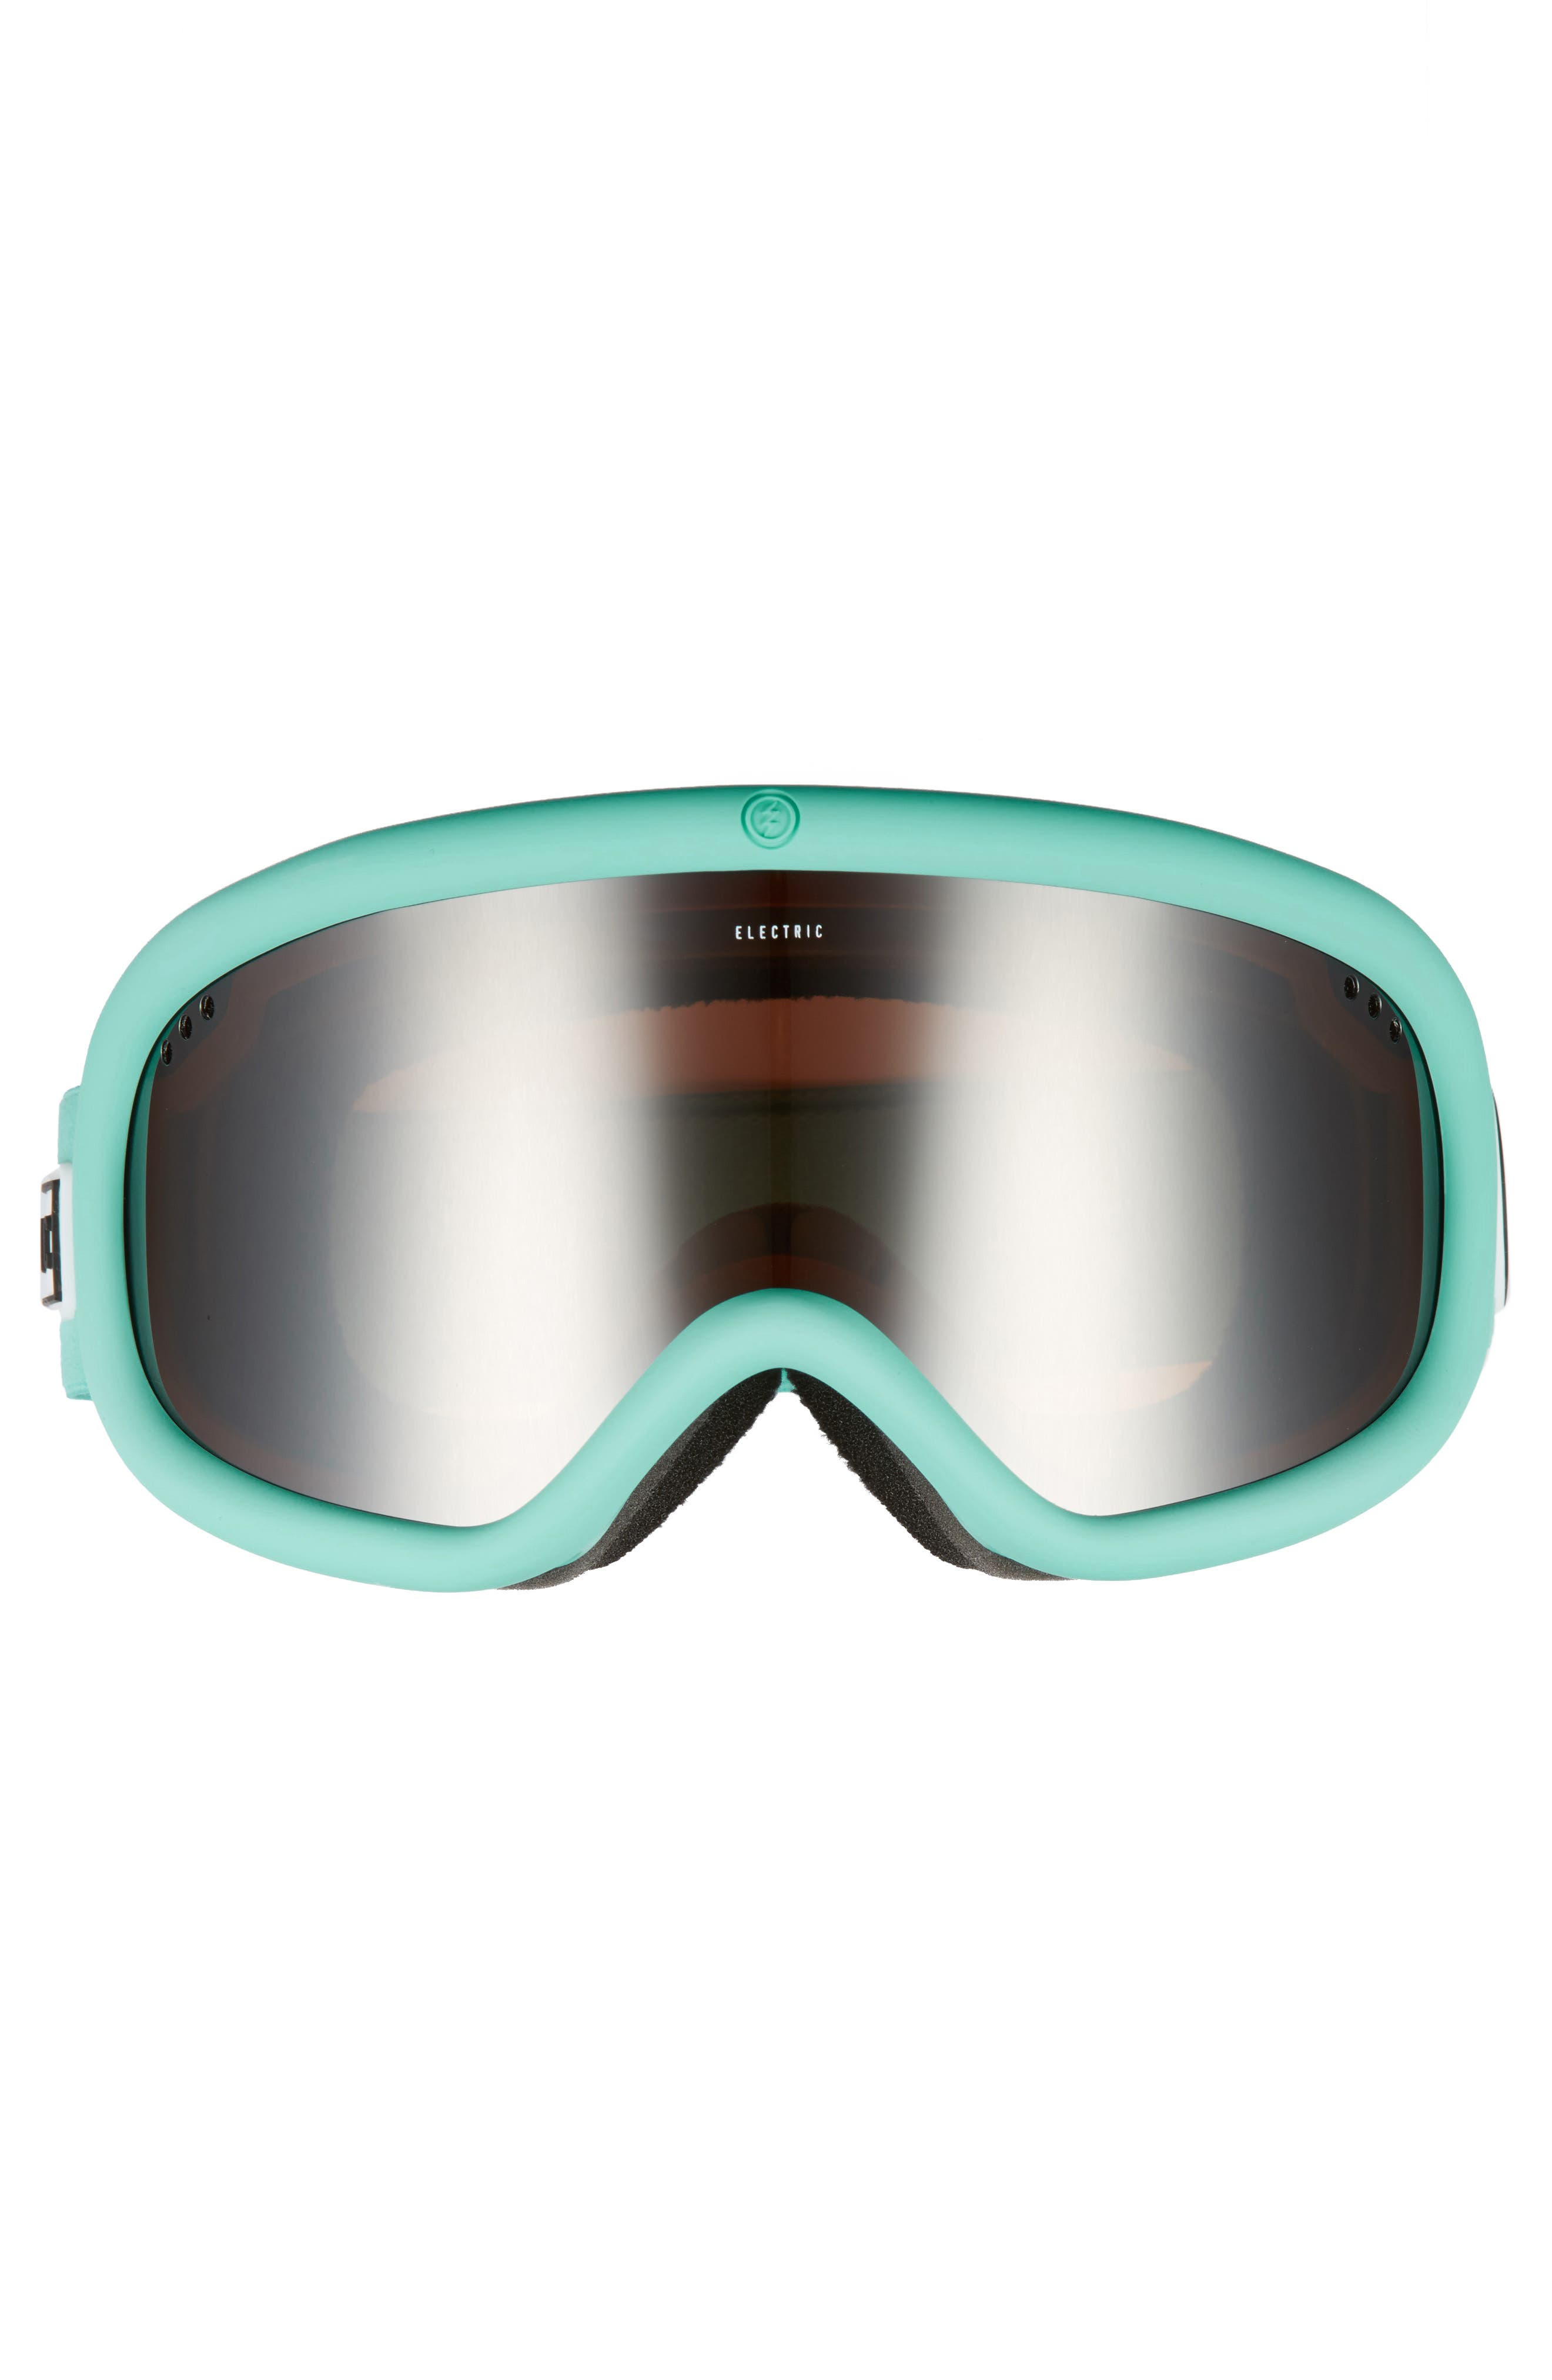 Charger Snow Goggles,                             Alternate thumbnail 3, color,                             Turquoise/ Silver Chrome